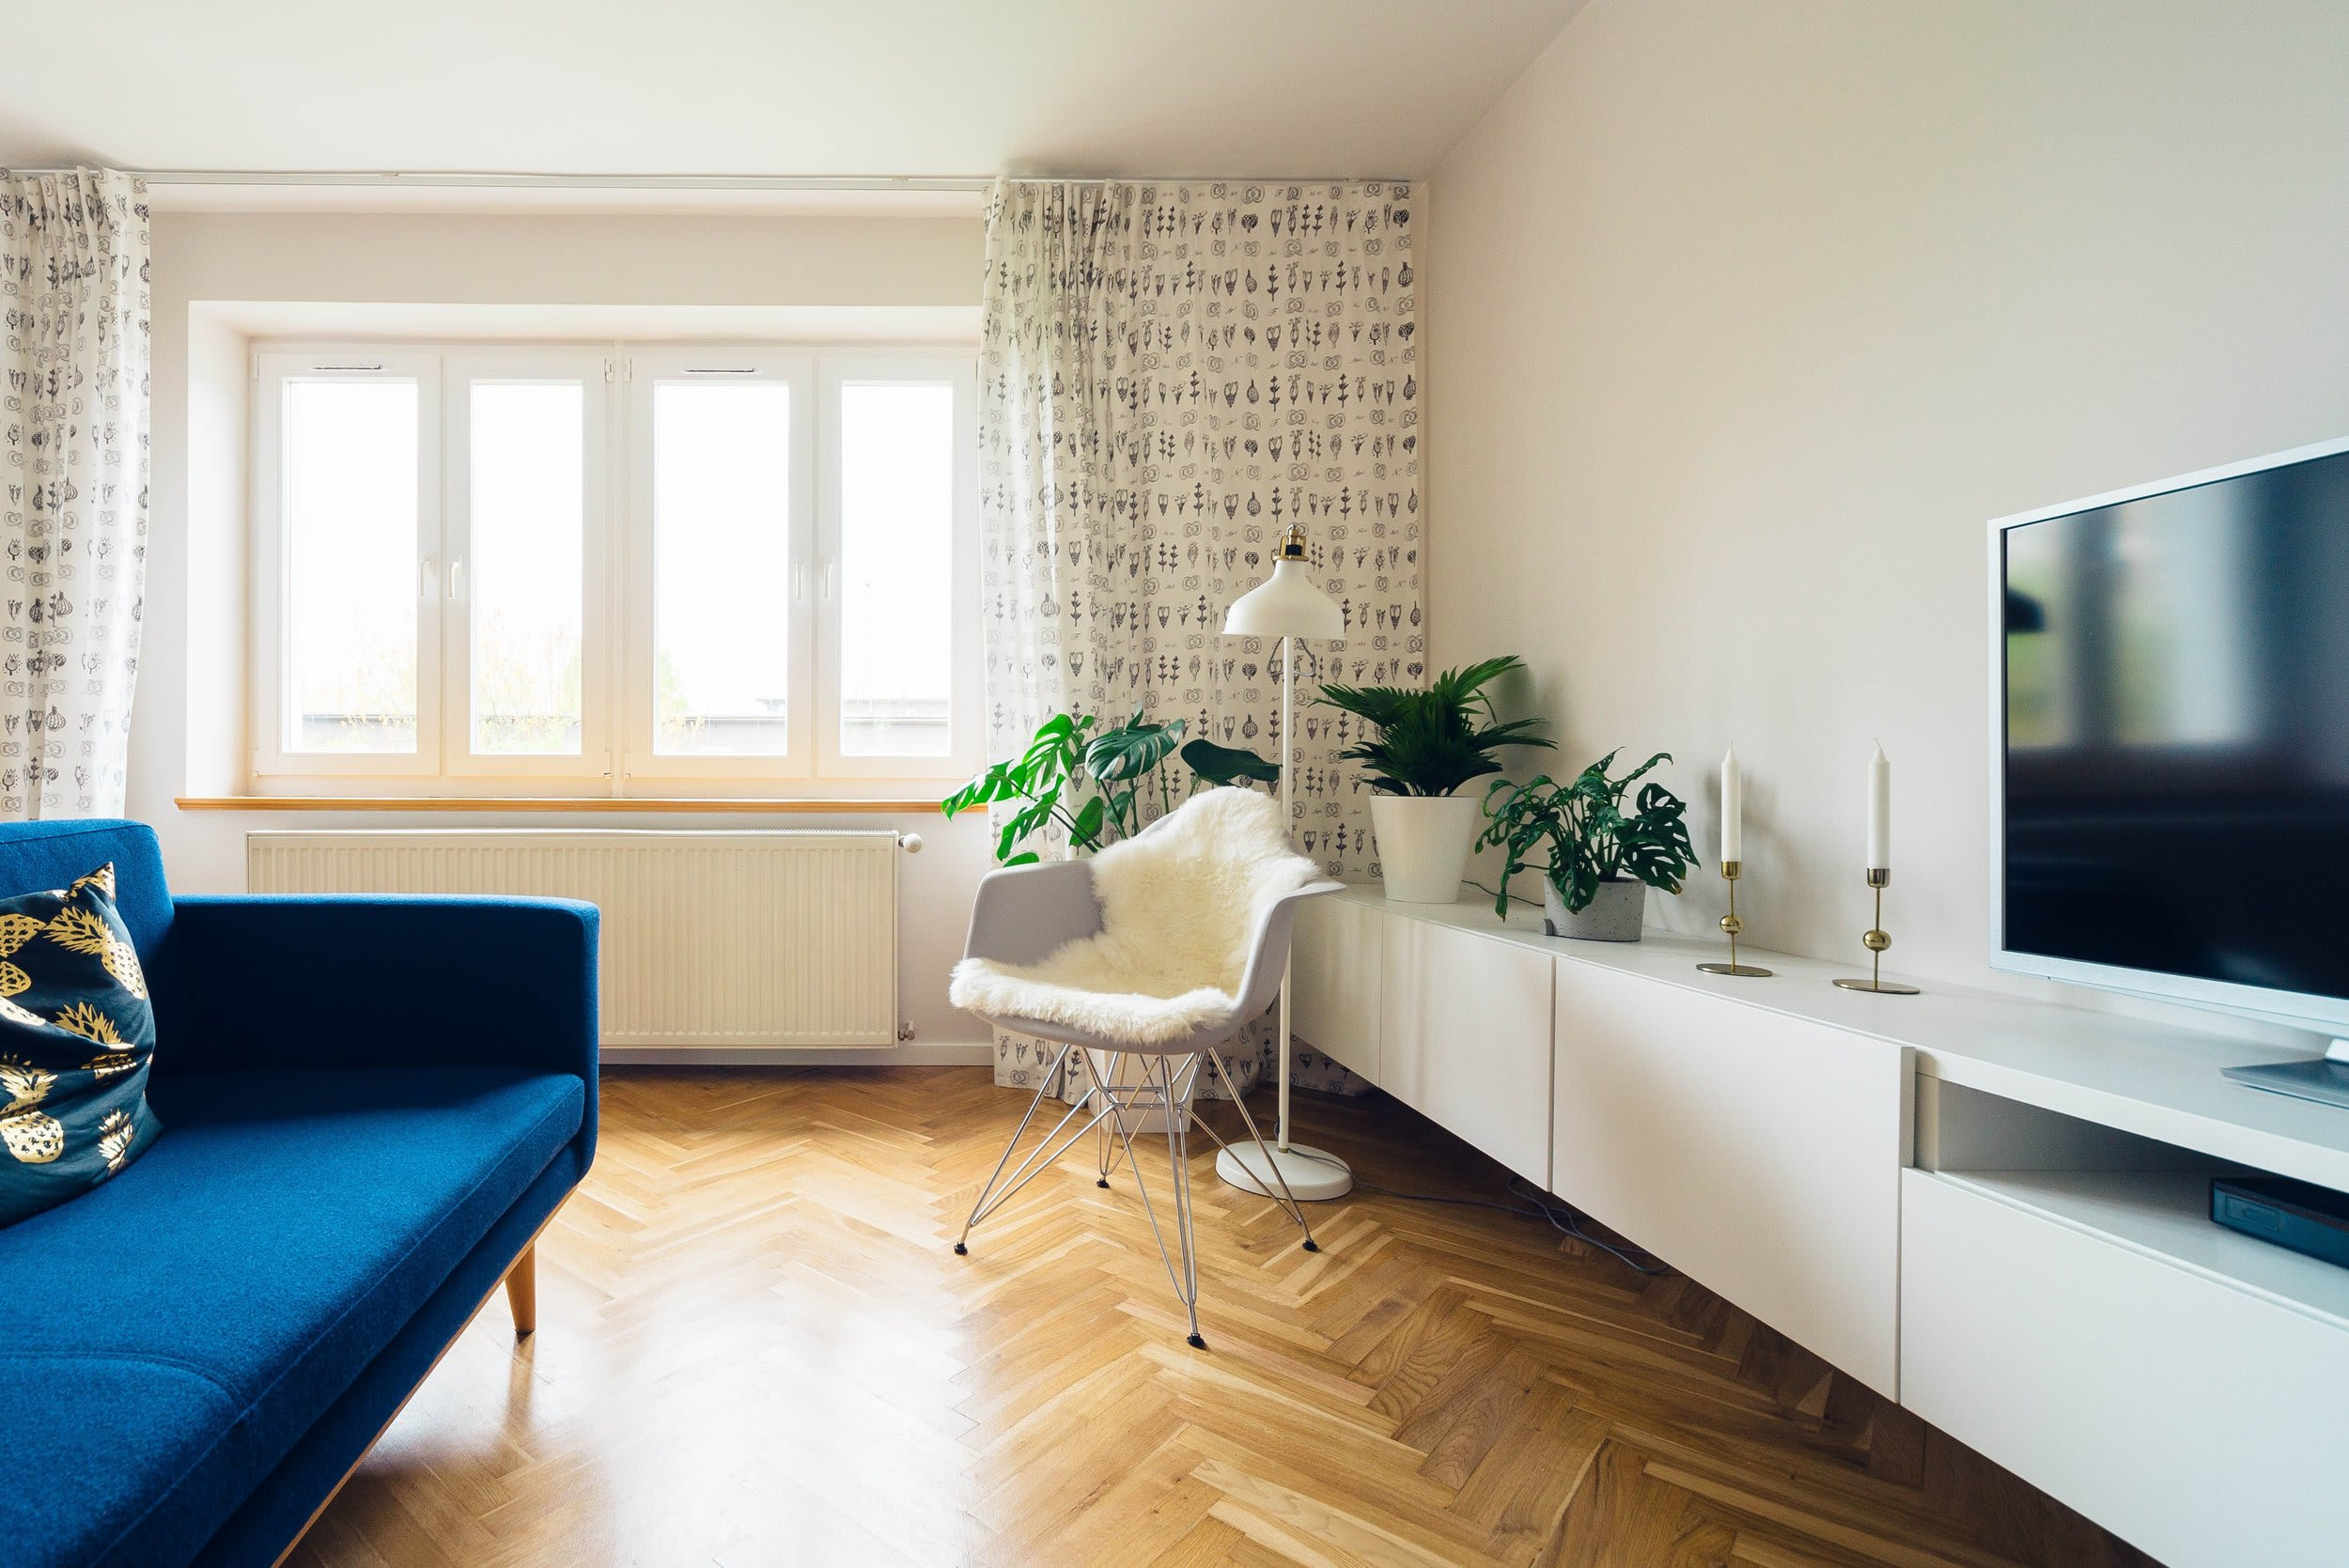 Home Essentials Checklist: What to Buy Before Moving In